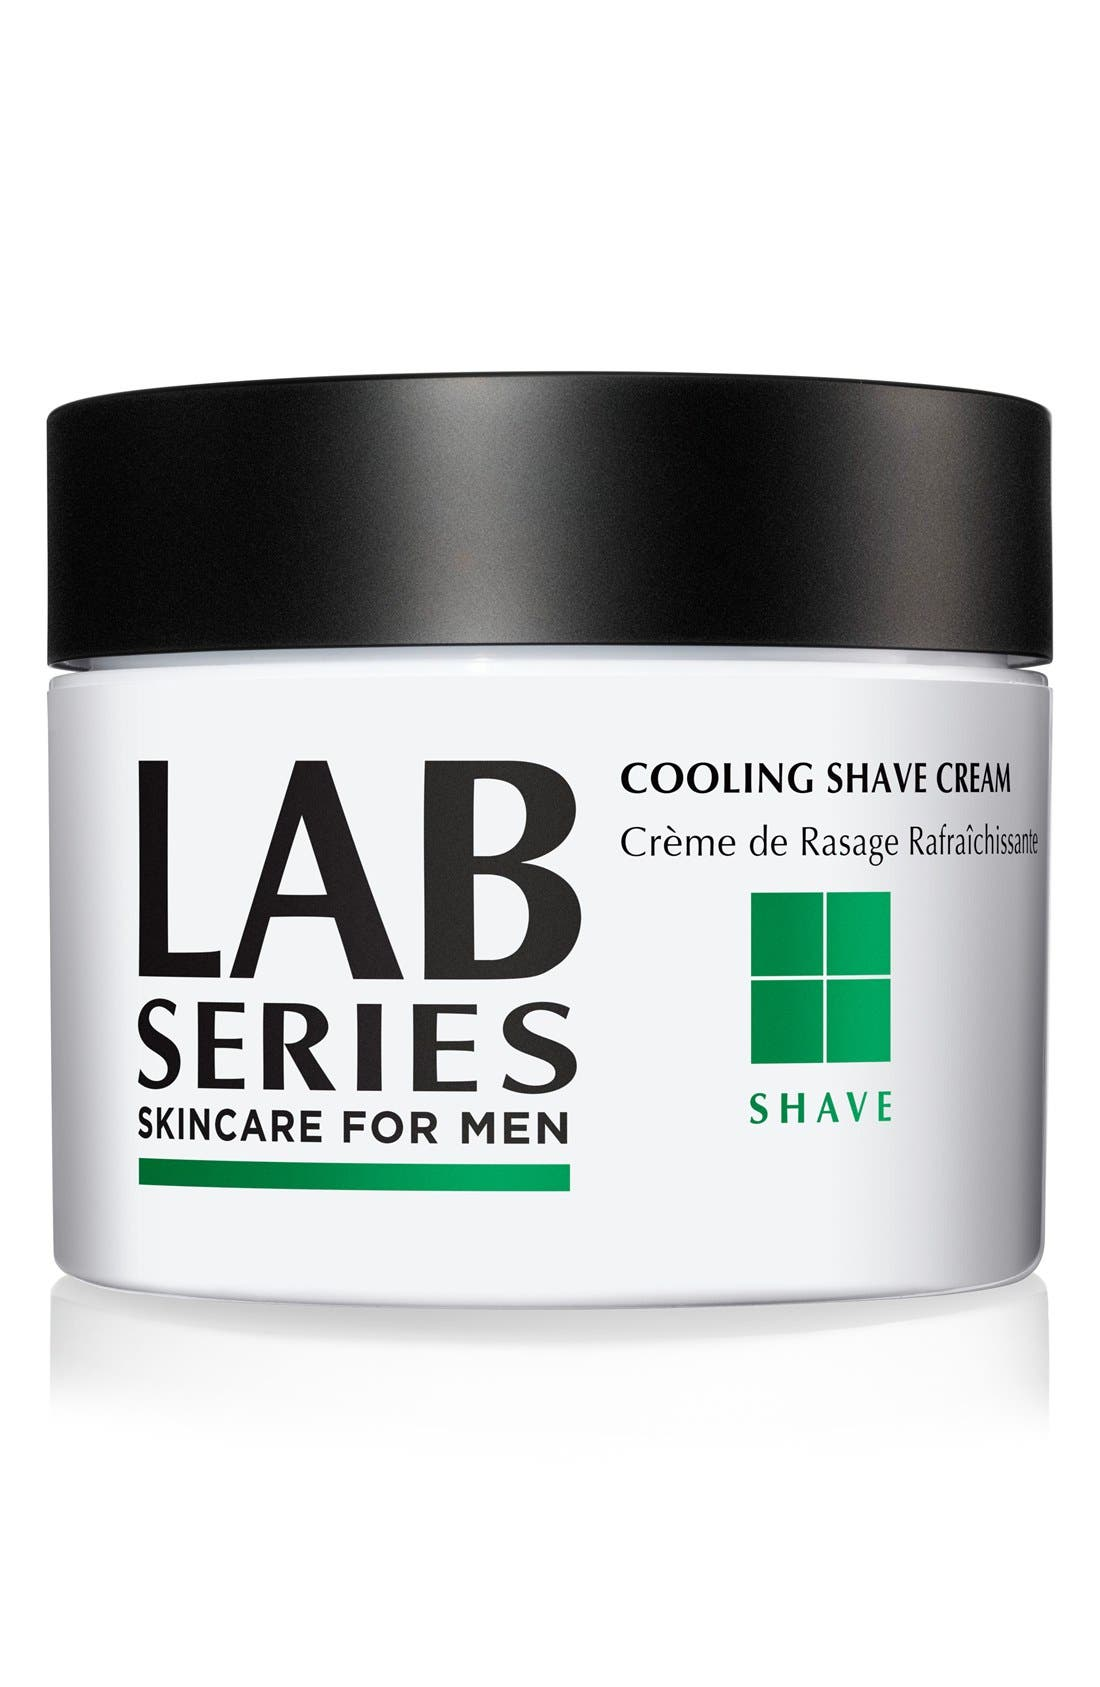 Cooling Shave Cream Jar,                             Main thumbnail 1, color,                             NO COLOR